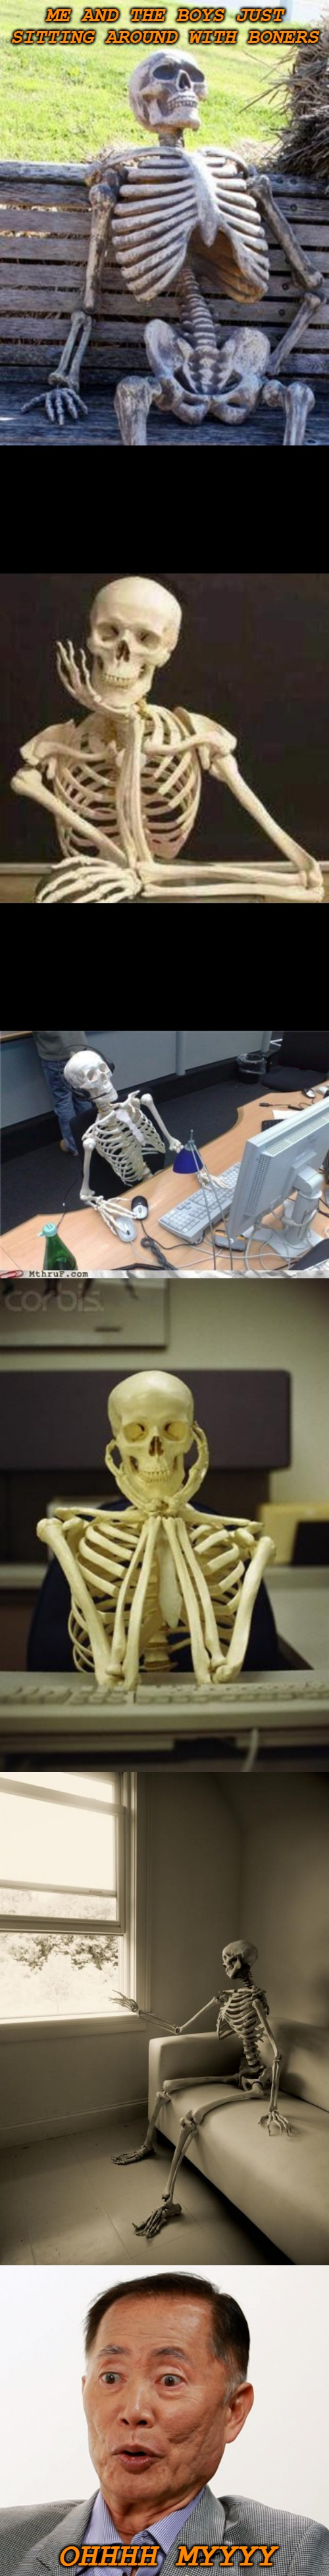 Me and the Boys Week (Boner Edition) A CravenMoordik and Nixie.Knox Event... | ME AND THE BOYS JUST SITTING AROUND WITH BONERS OHHHH MYYYY | image tagged in memes,waiting skeleton,skeleton waiting,george takei oh my,me and the boys week | made w/ Imgflip meme maker